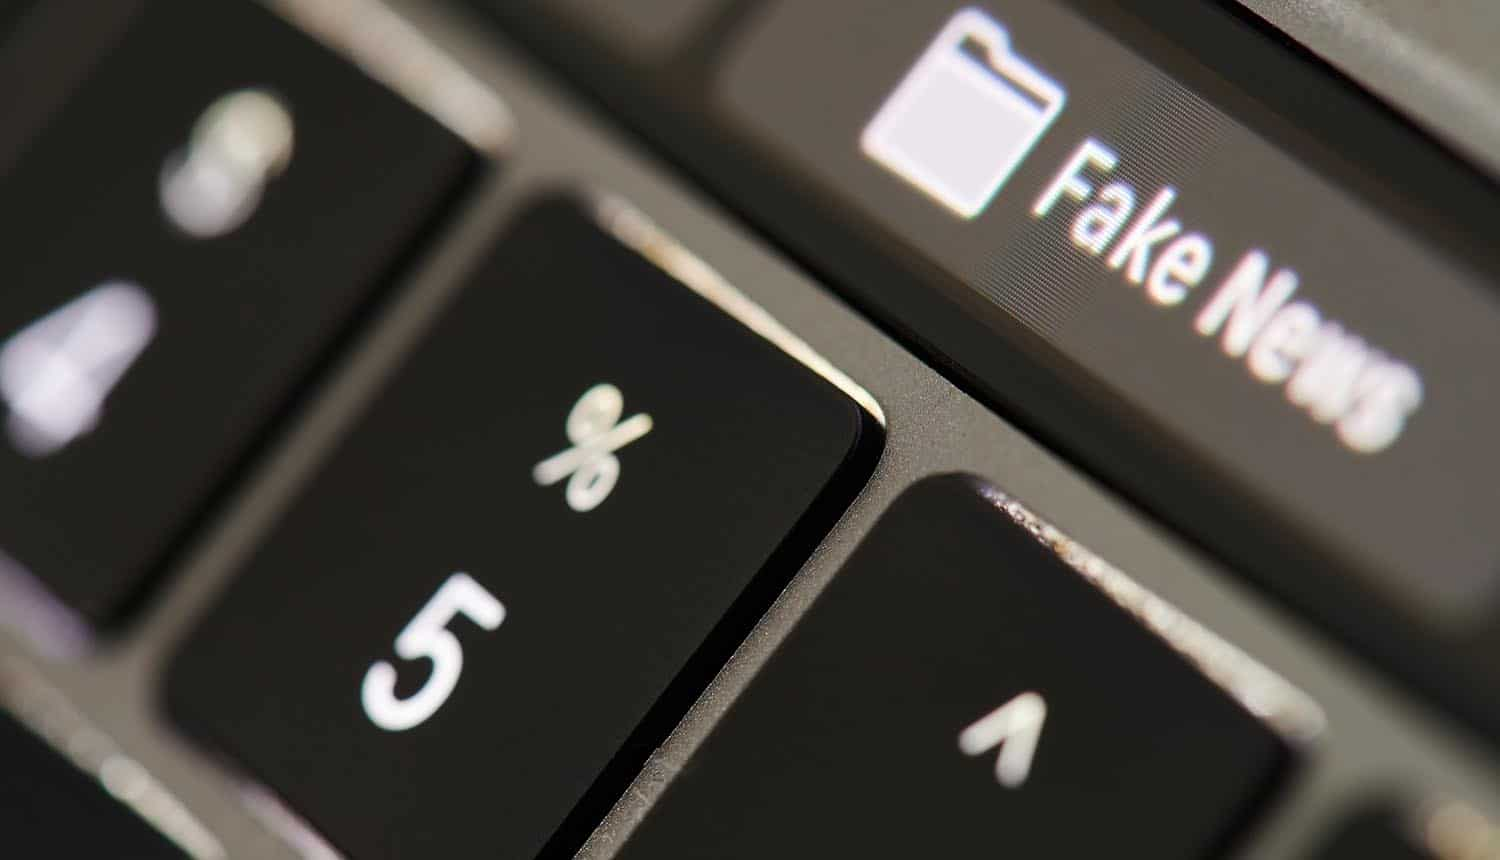 Fake news button on keyboard showing AI and misinformation